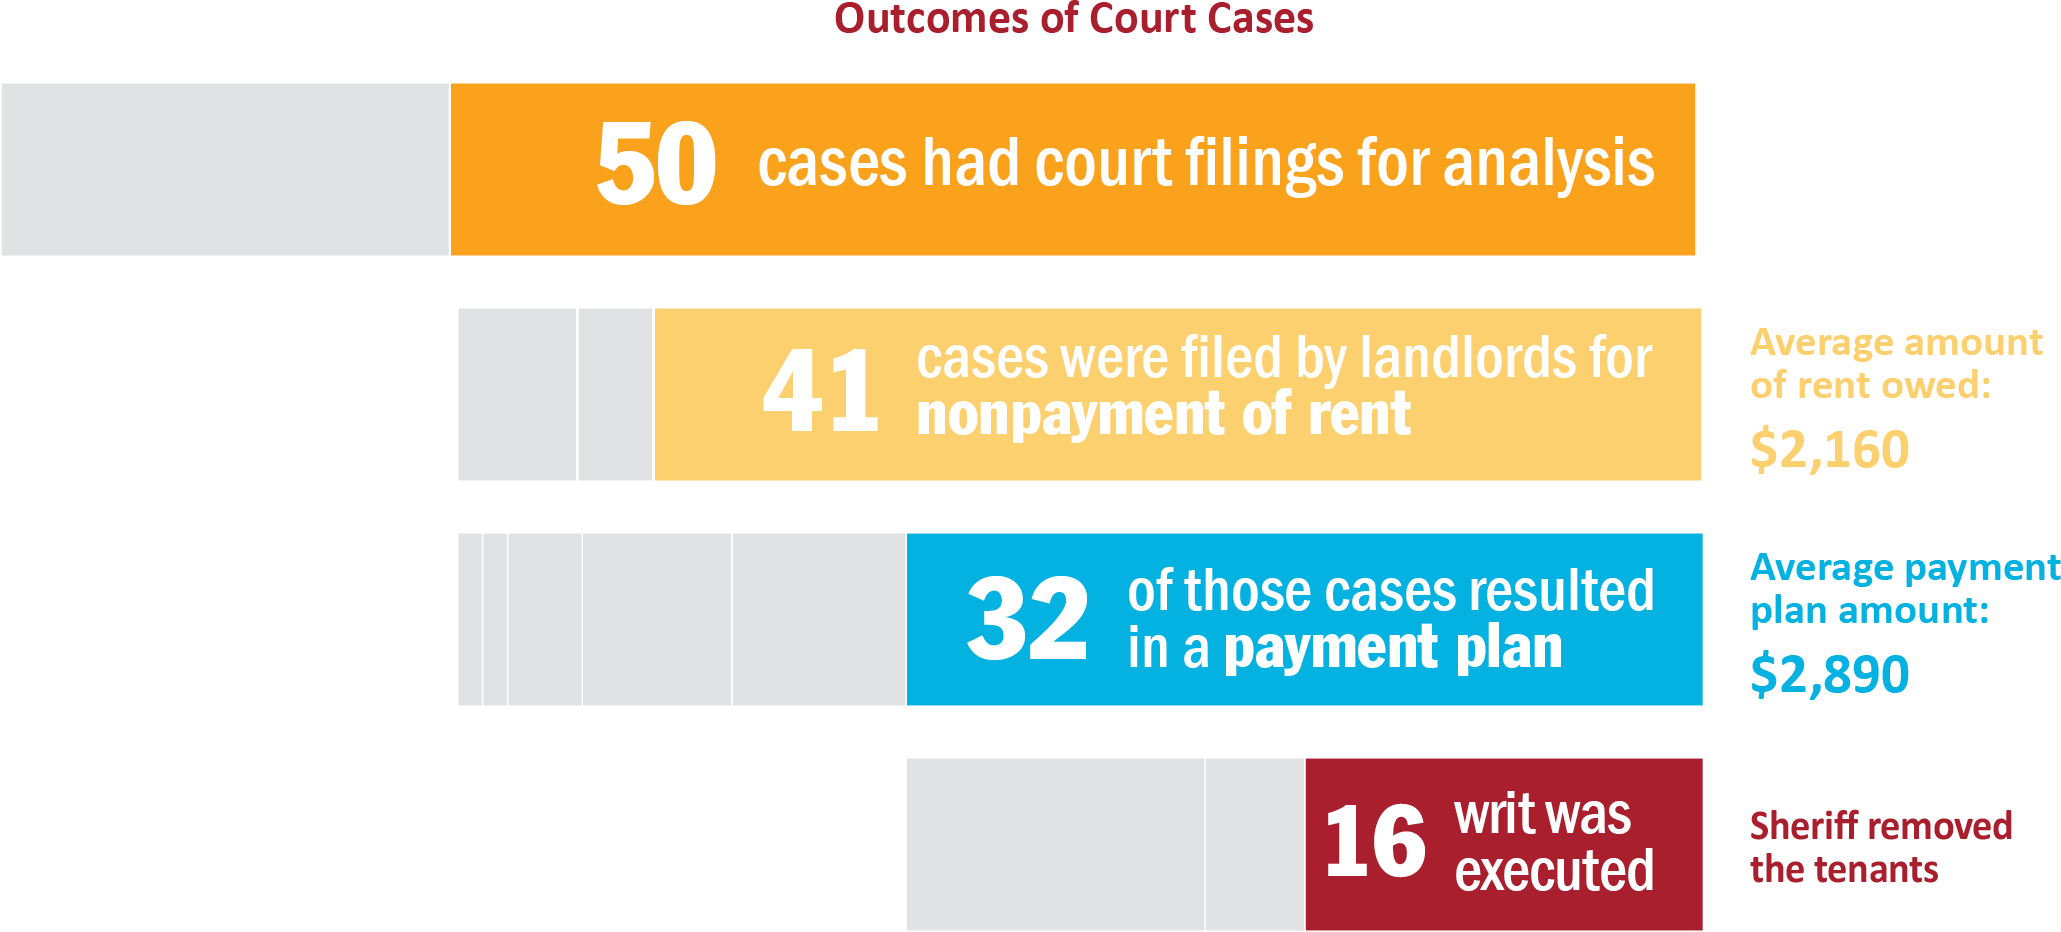 Outcomes of Court Cases